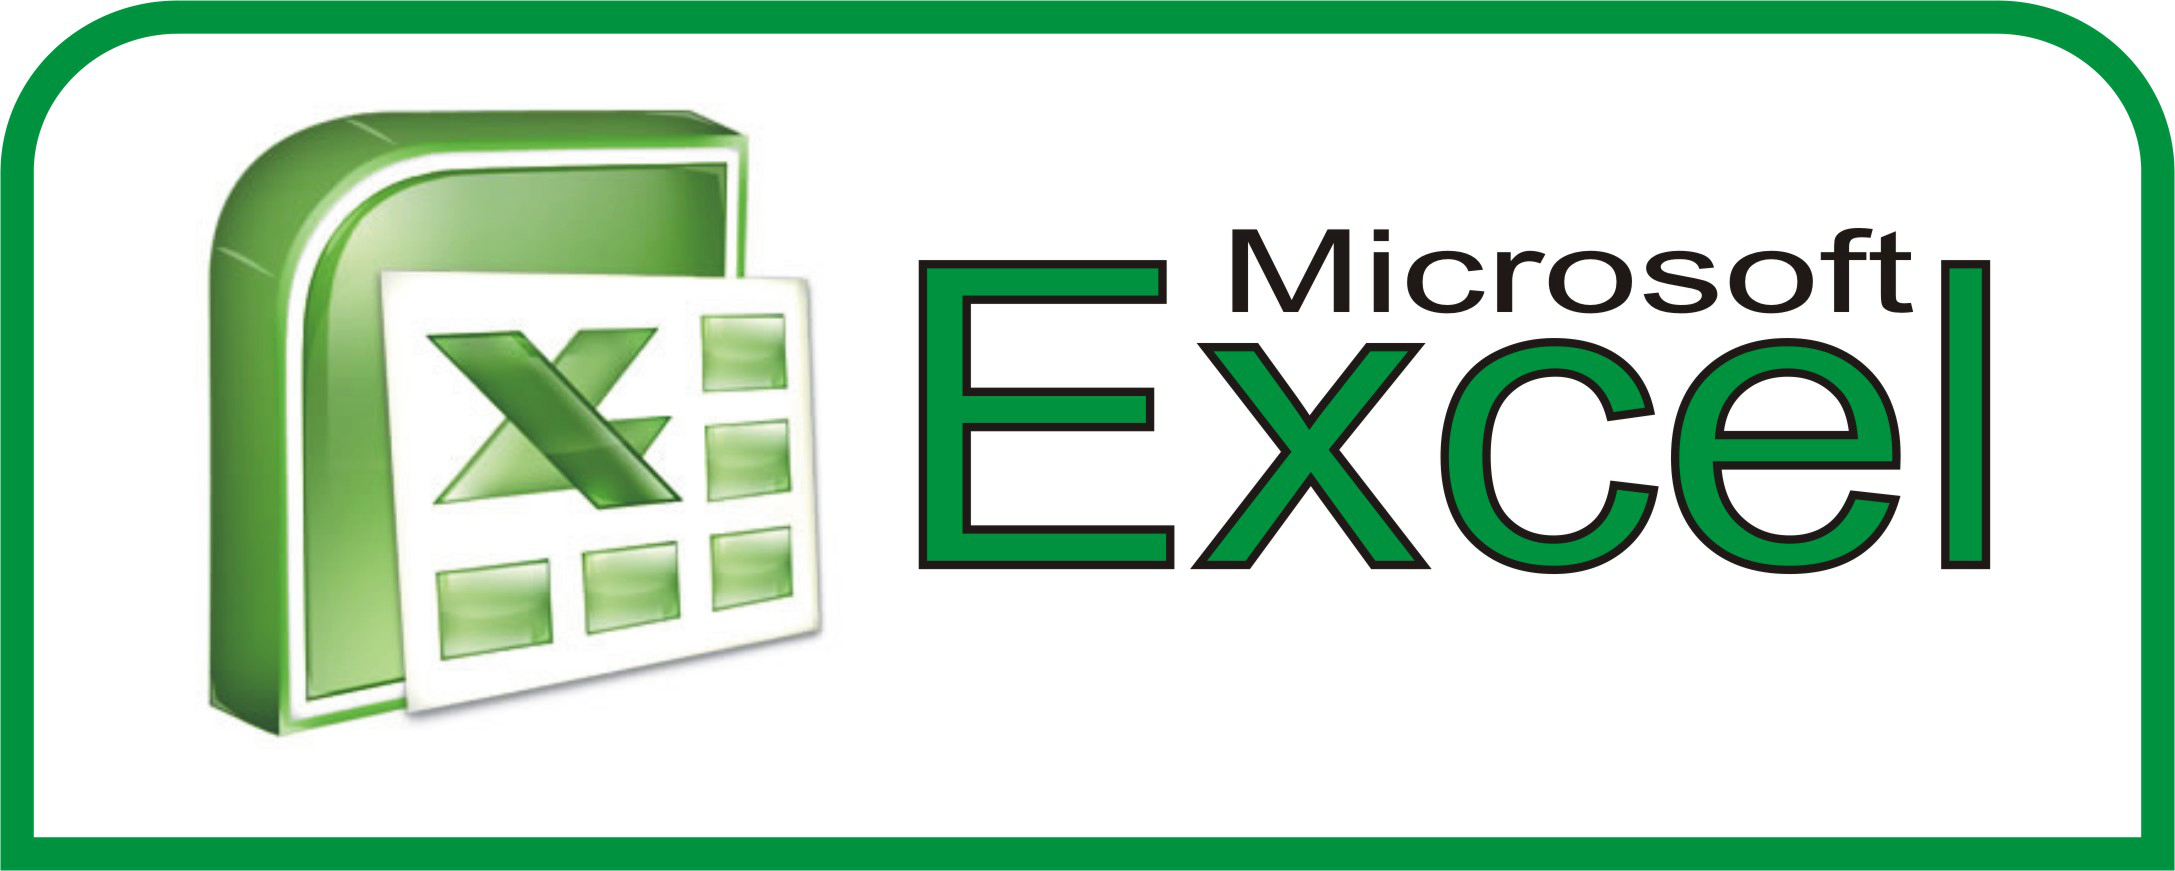 Ediblewildsus  Unique  Excel Shortcuts You Probably Didnt Know About  Techdissected With Handsome Excel Personal Finance Template Besides Excel Qm For Mac Furthermore Temporary Excel Files With Attractive Label In Excel Also Mortgage Excel Template In Addition How To Make Bar Graph On Excel And Excel Refer To Another Sheet As Well As Excel Lock Header Row Additionally Leading  In Excel From Techdissectedcom With Ediblewildsus  Handsome  Excel Shortcuts You Probably Didnt Know About  Techdissected With Attractive Excel Personal Finance Template Besides Excel Qm For Mac Furthermore Temporary Excel Files And Unique Label In Excel Also Mortgage Excel Template In Addition How To Make Bar Graph On Excel From Techdissectedcom